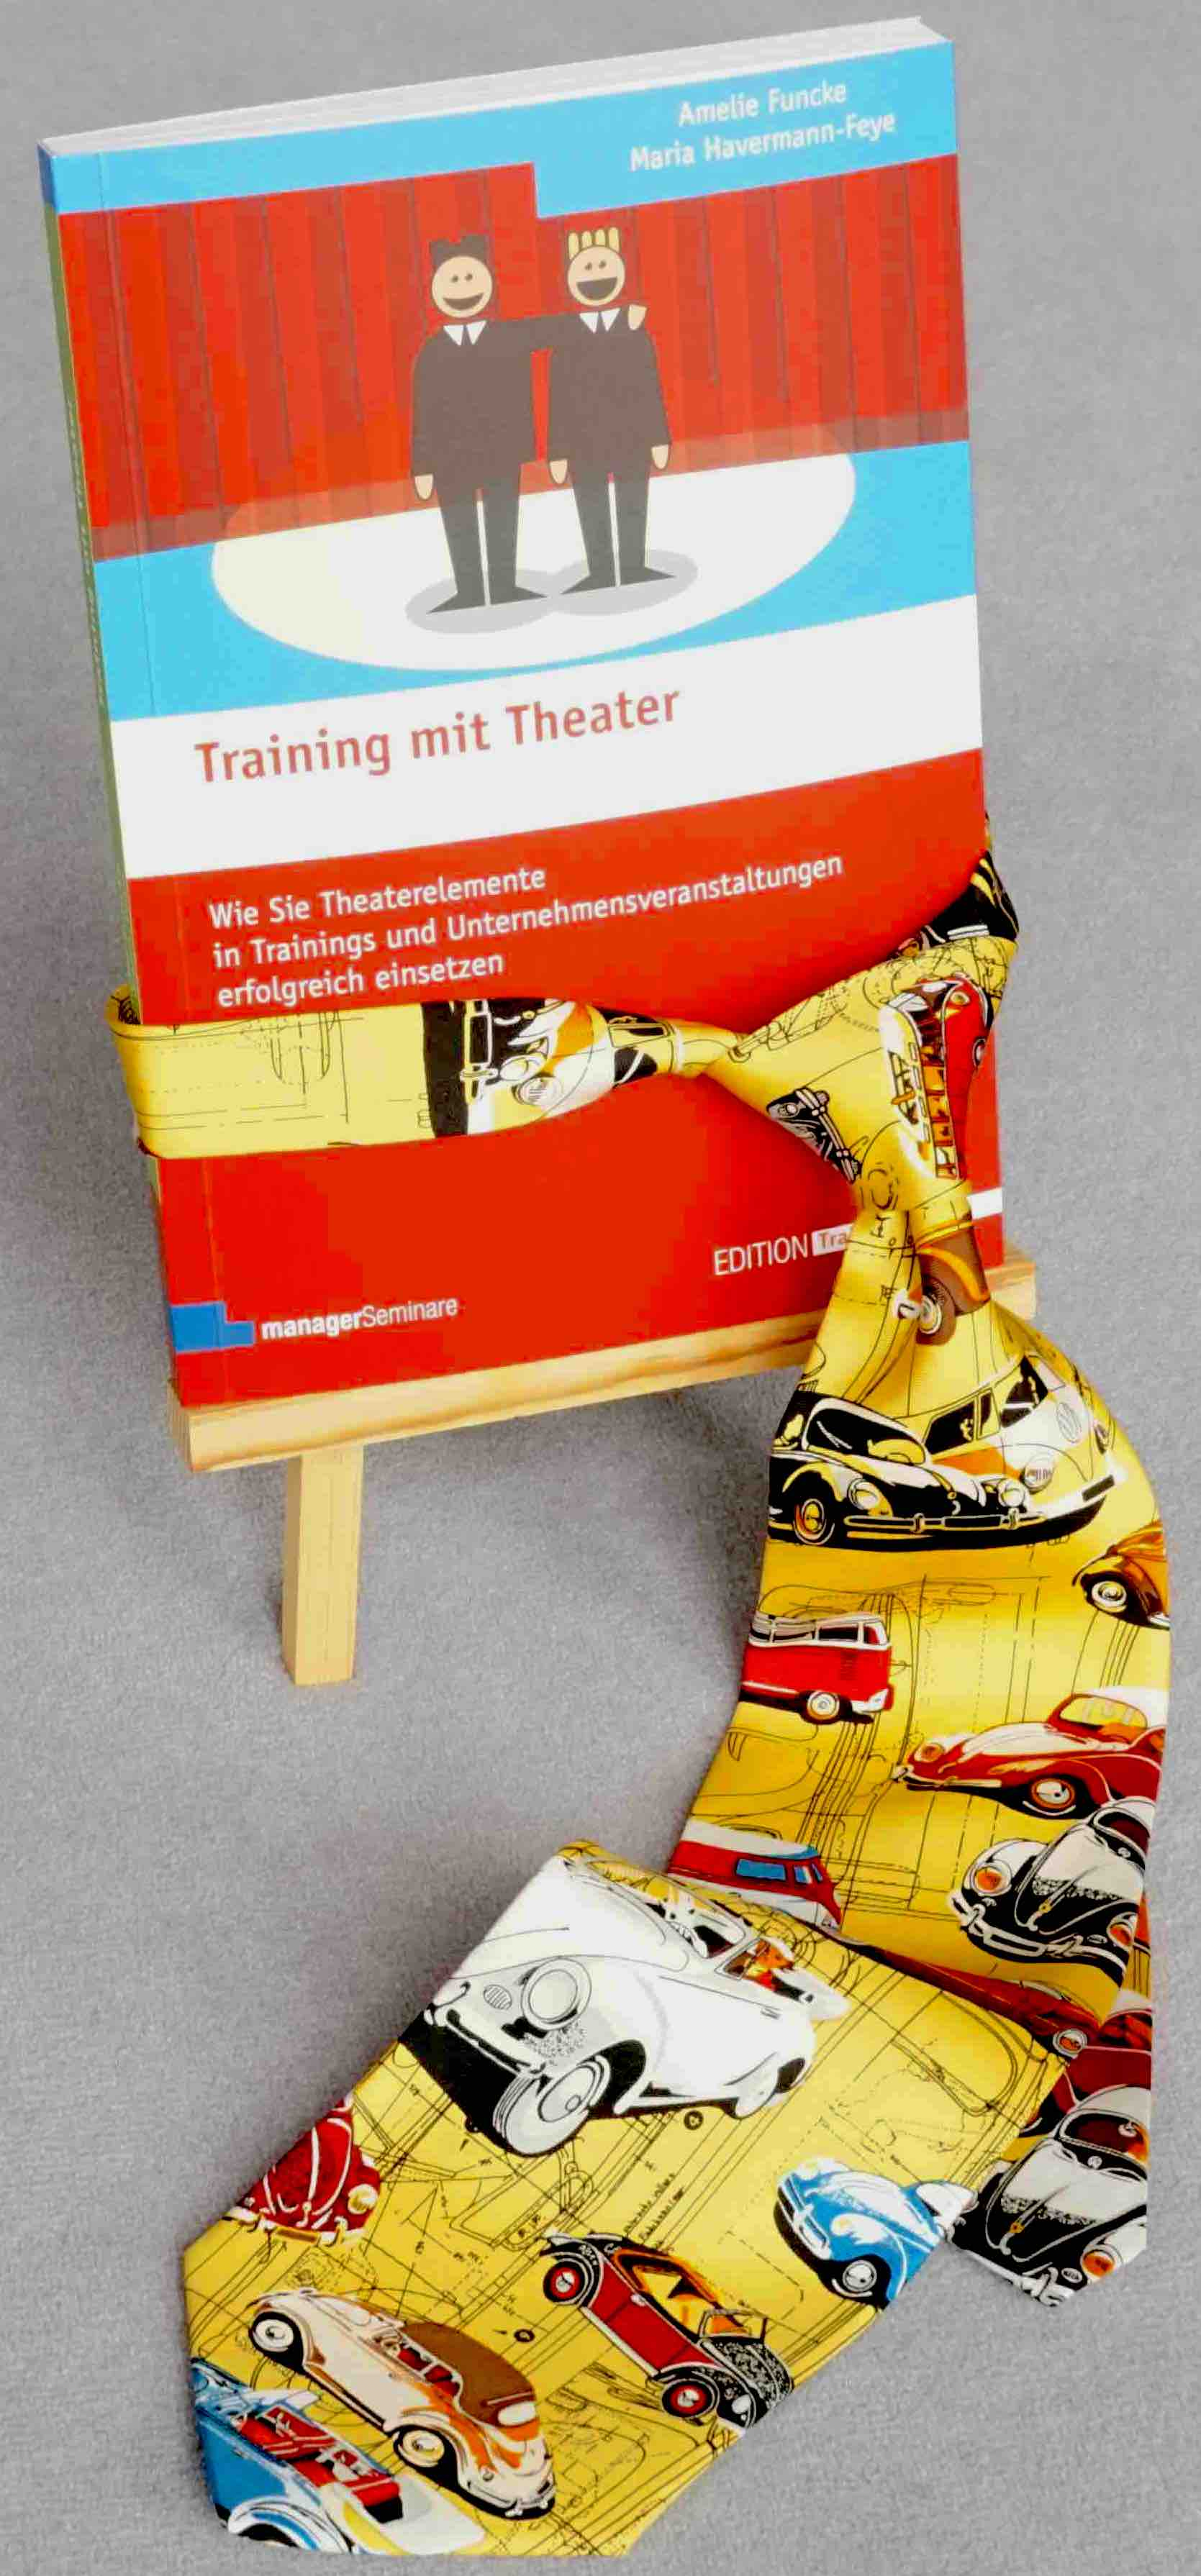 Funke/Havermann-Feye 2015: Training mit Theater – Rezension